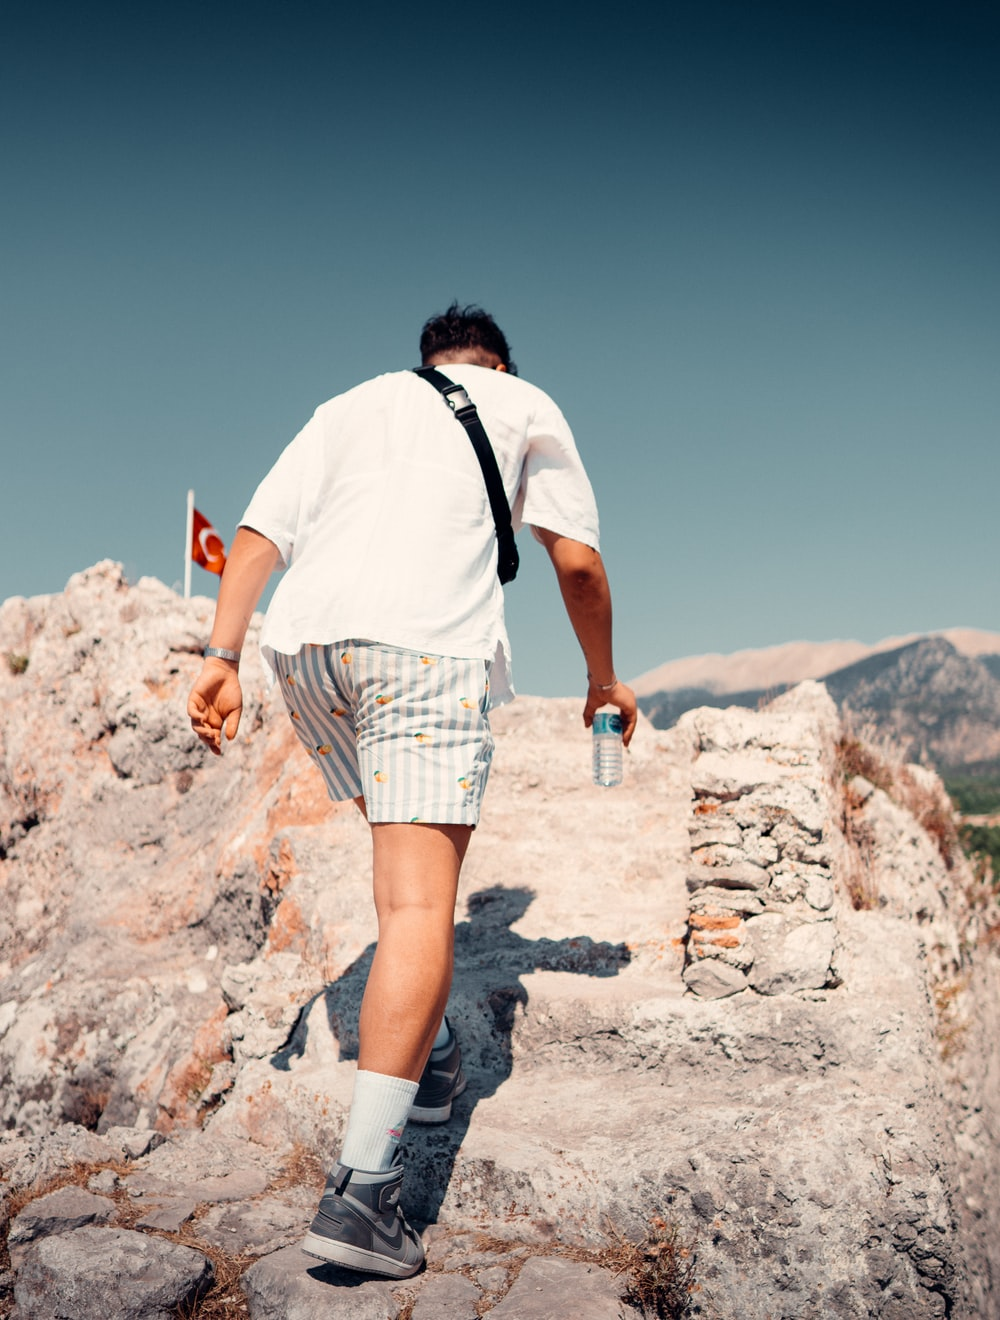 man in white t-shirt and brown plaid shorts standing on rocky hill during daytime